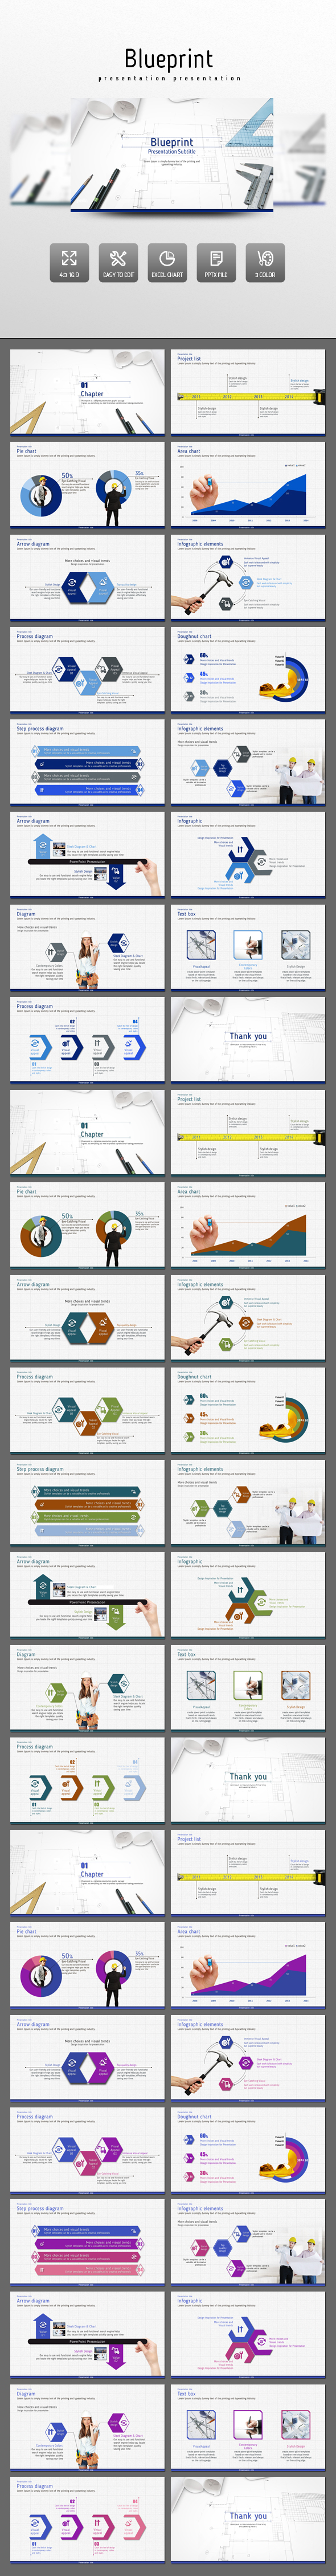 Blueprint powerpoint presentation template design slides download blueprint powerpoint presentation template design slides download httpgraphicriveritemblueprint14137250refksioks malvernweather Images